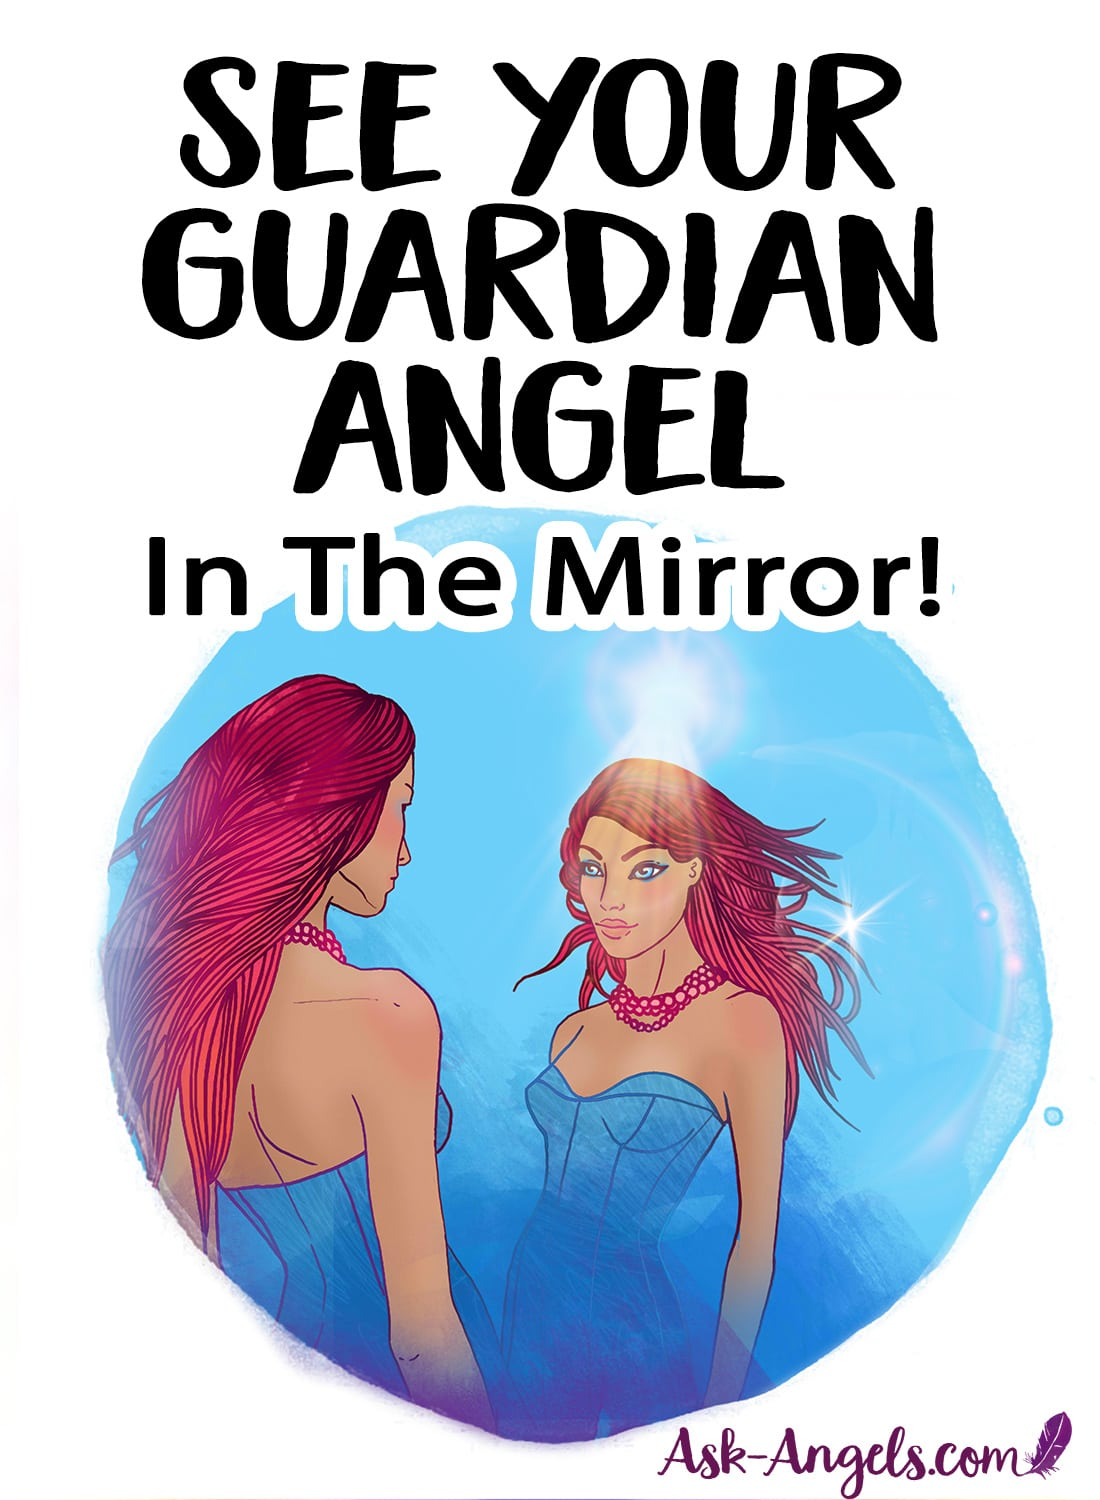 See Your Guardian Angel in The Mirror!